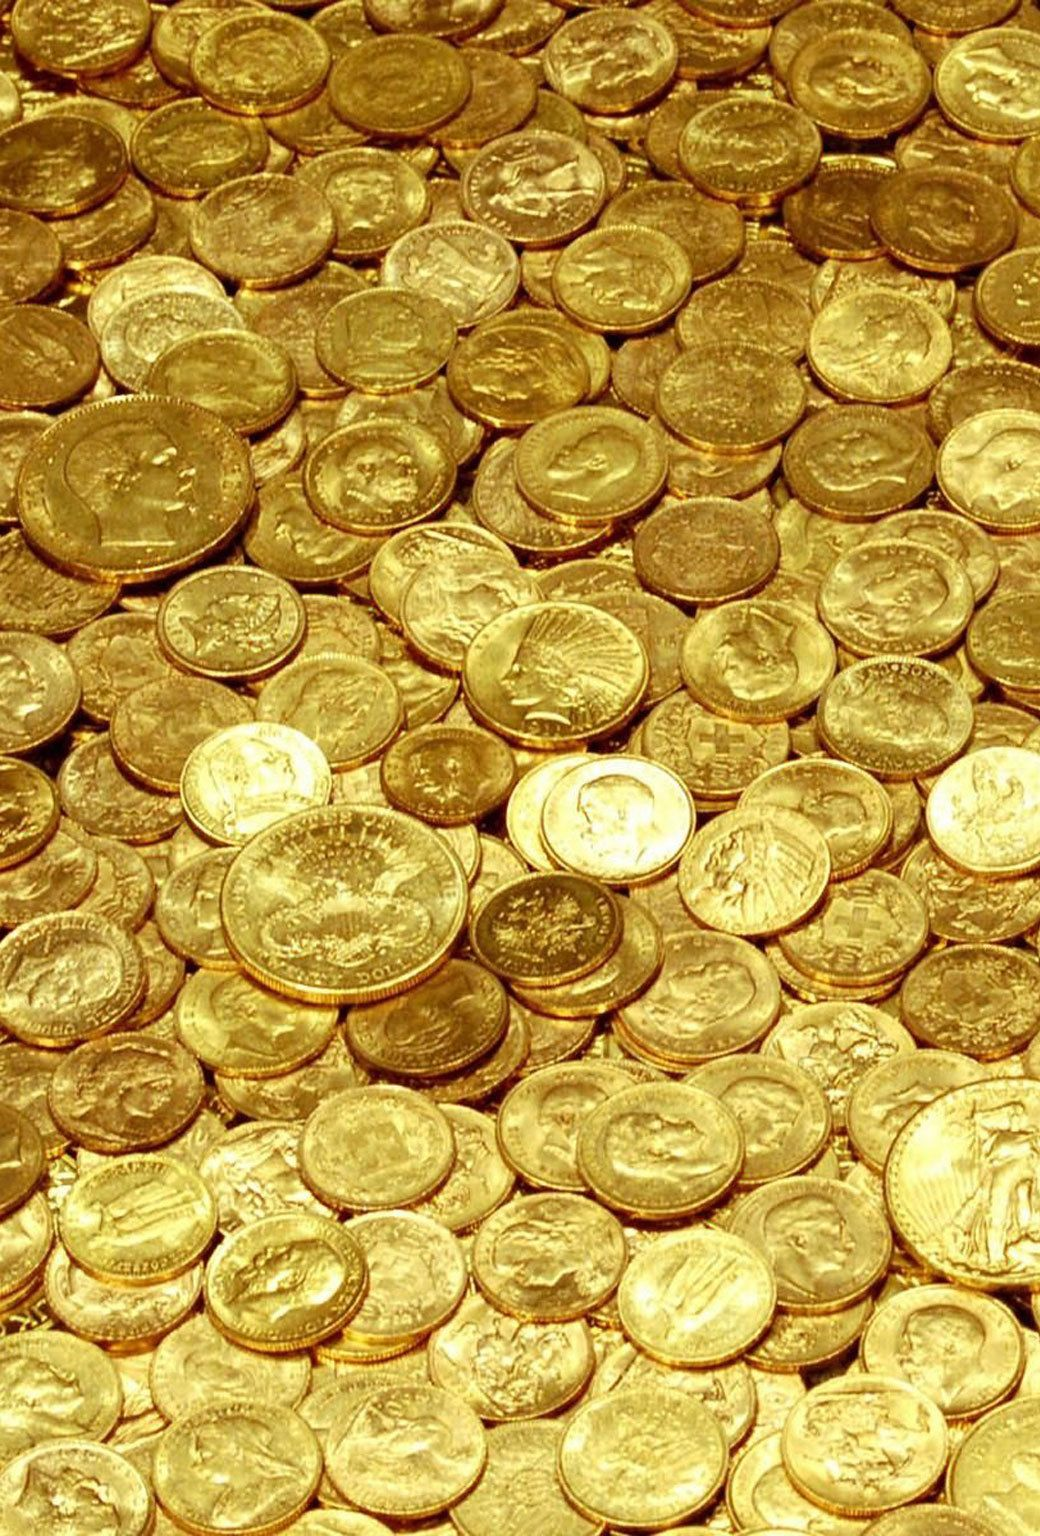 Free Hd Parallax Wallpapers For Iphone Ipad Gold Money Gold Aesthetic Gold Coins